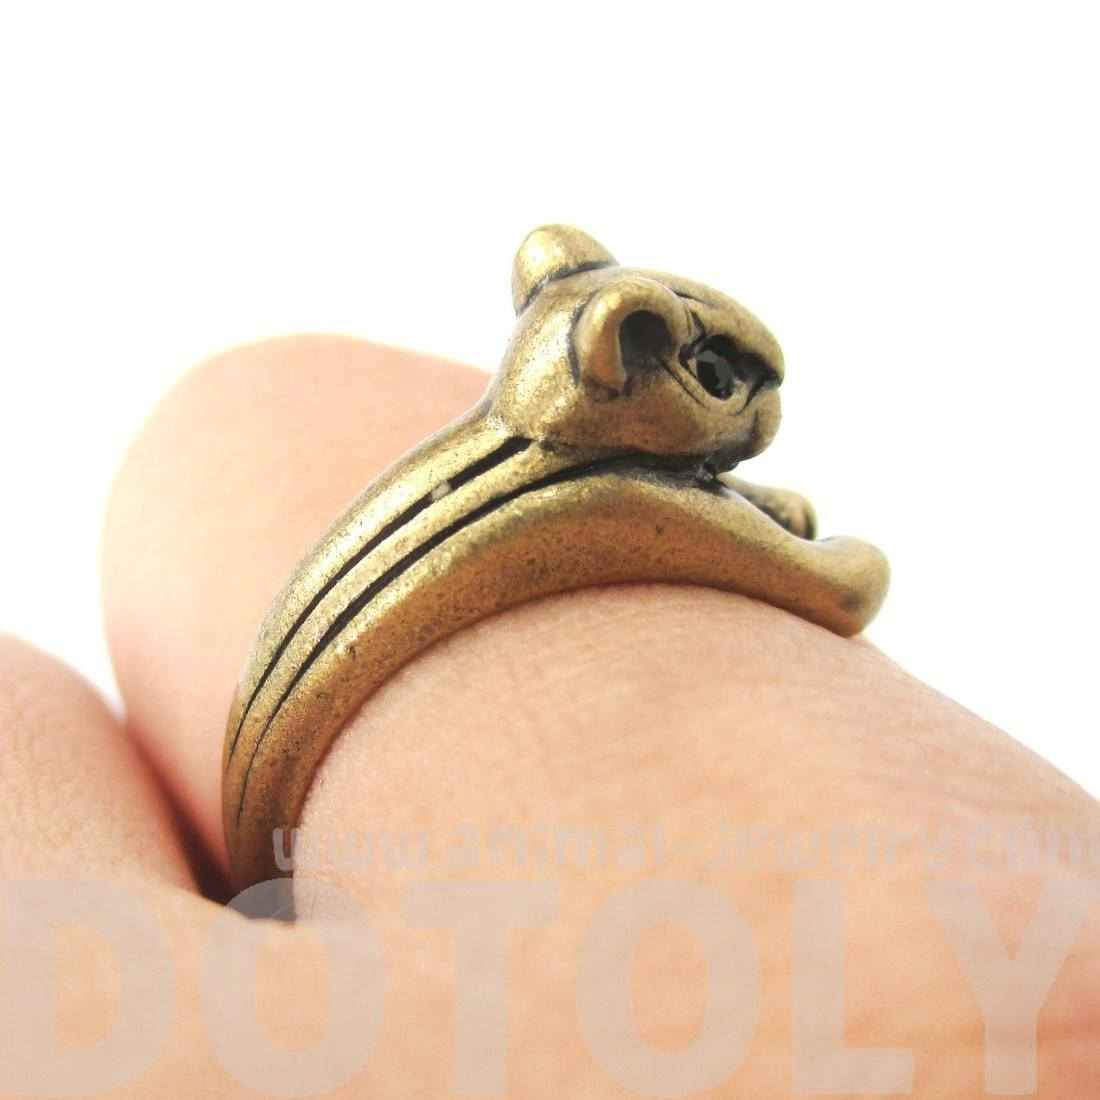 Squirrel Chipmunk Shaped Animal Wrap Ring in Brass | Animal Jewelry